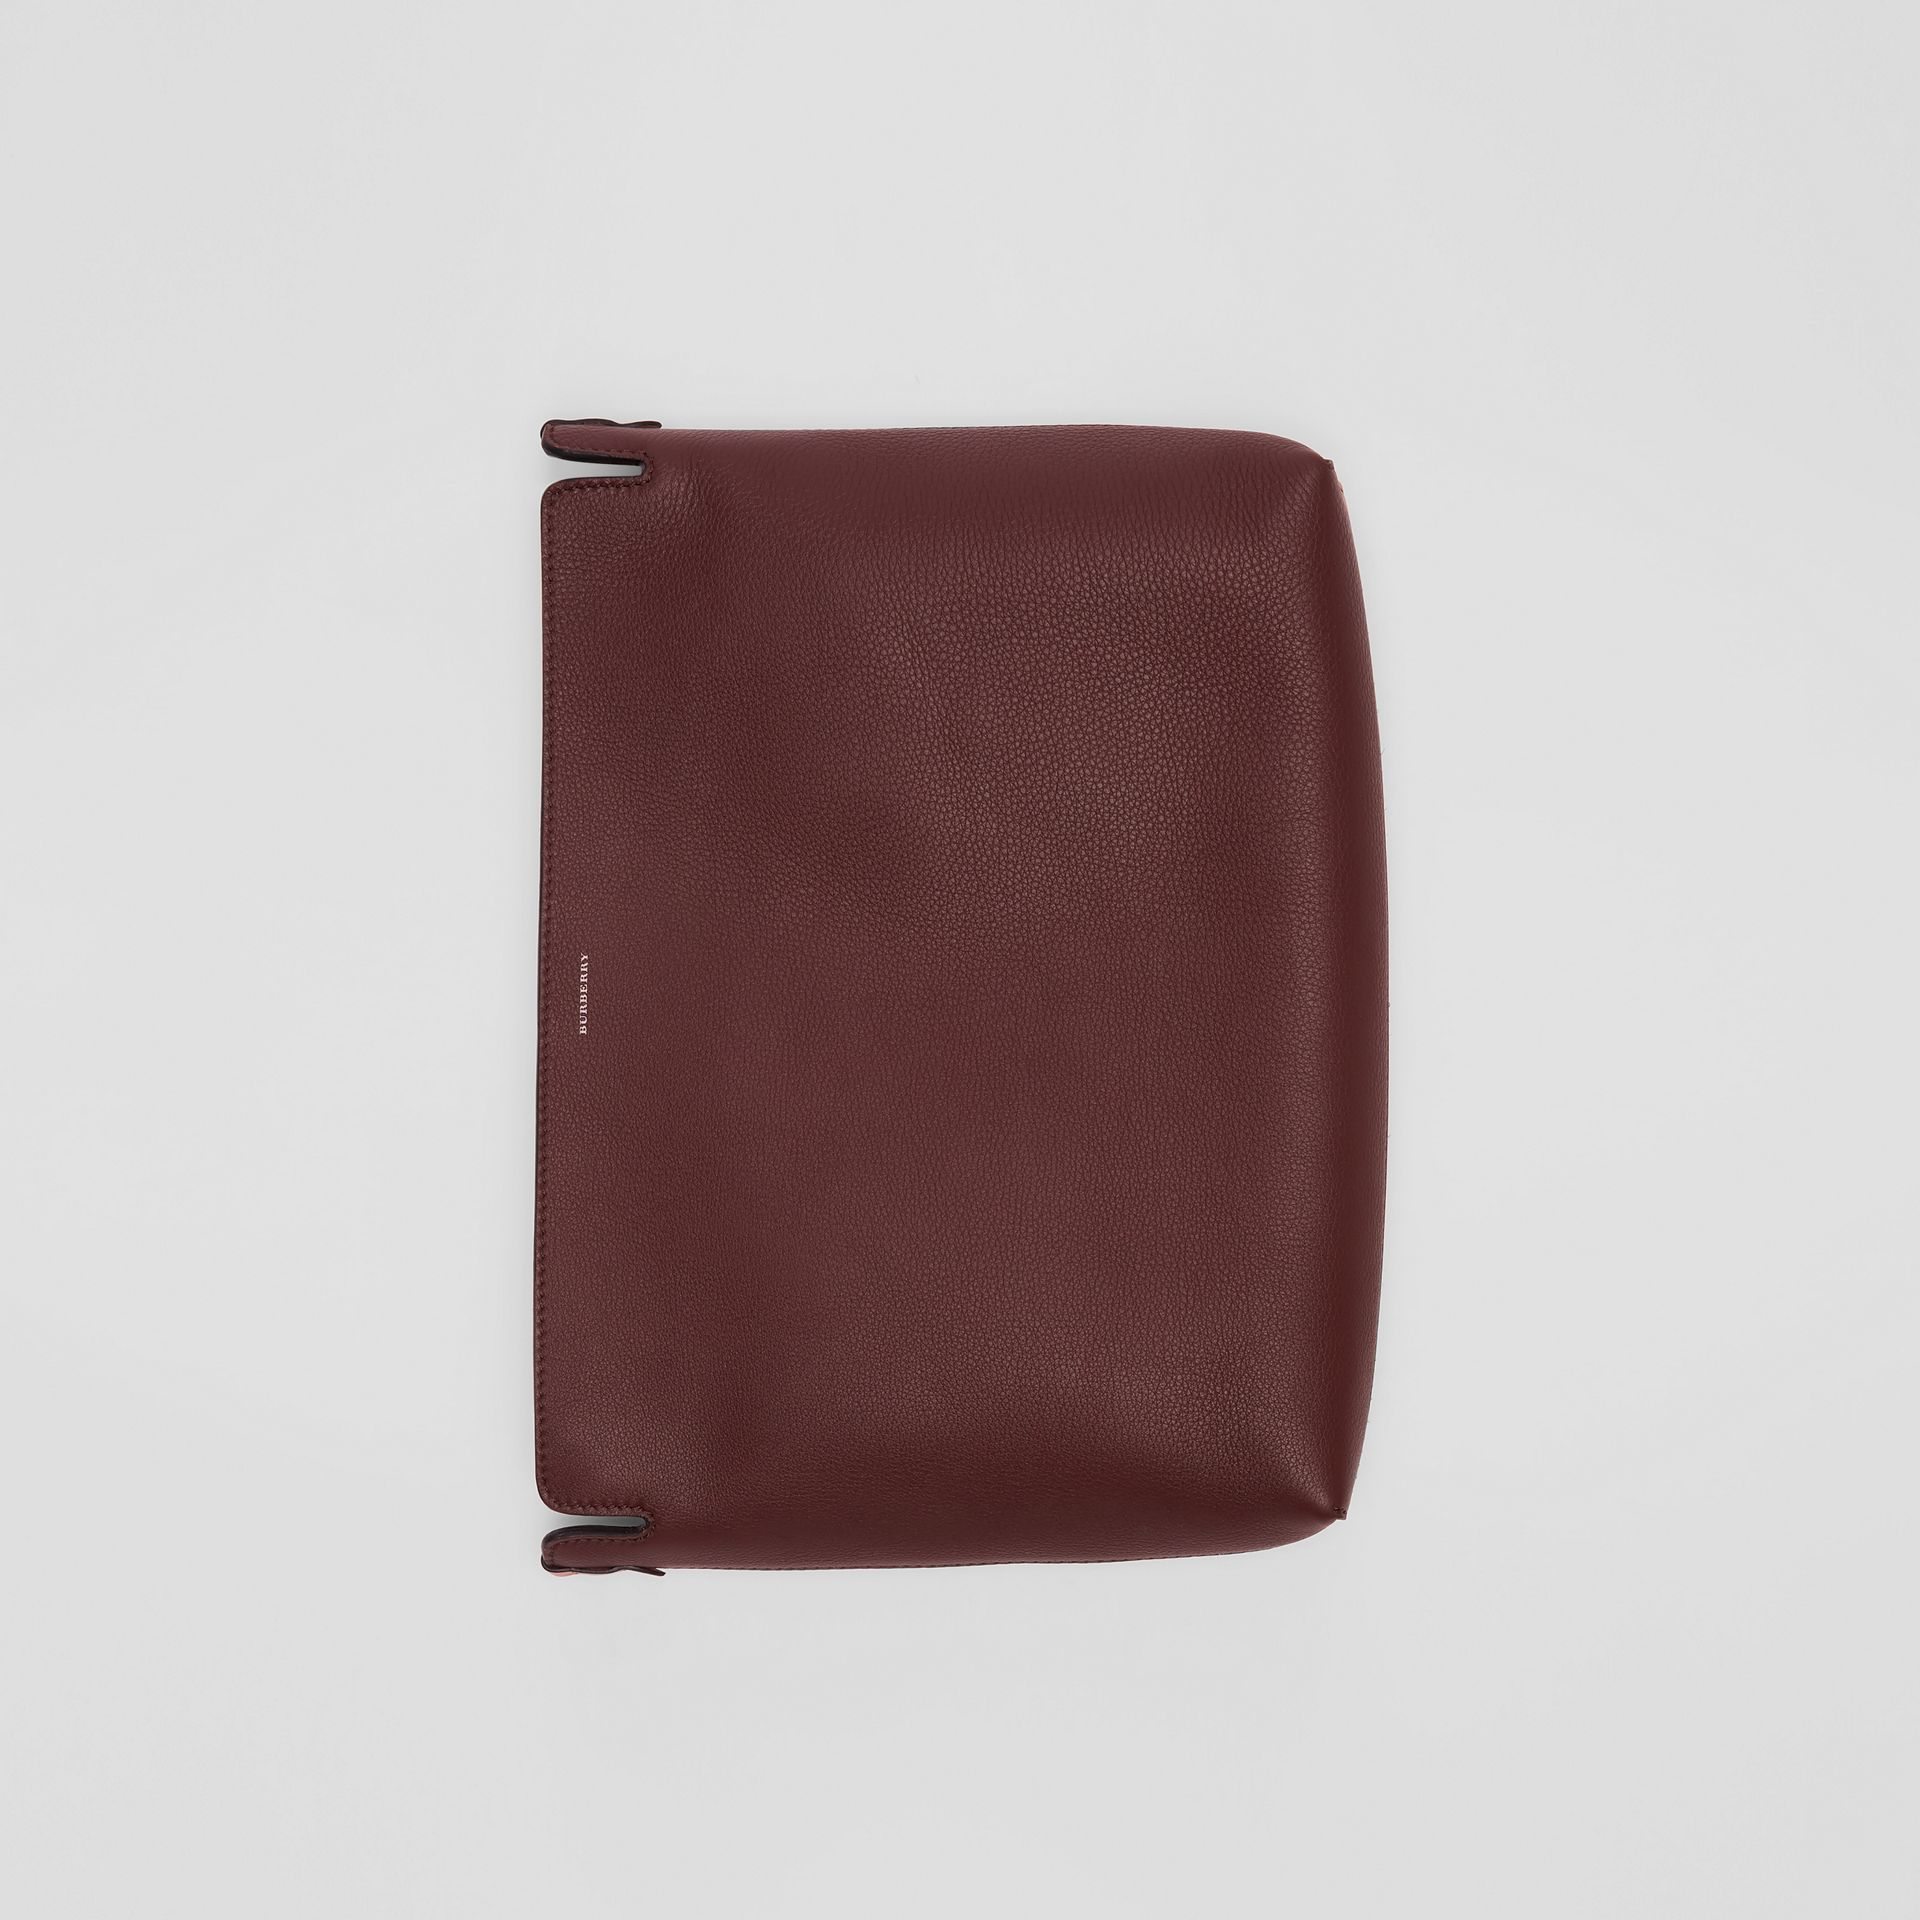 Large Tri-tone Leather Clutch in Deep Claret/dusty Rose - Women | Burberry United States - gallery image 2